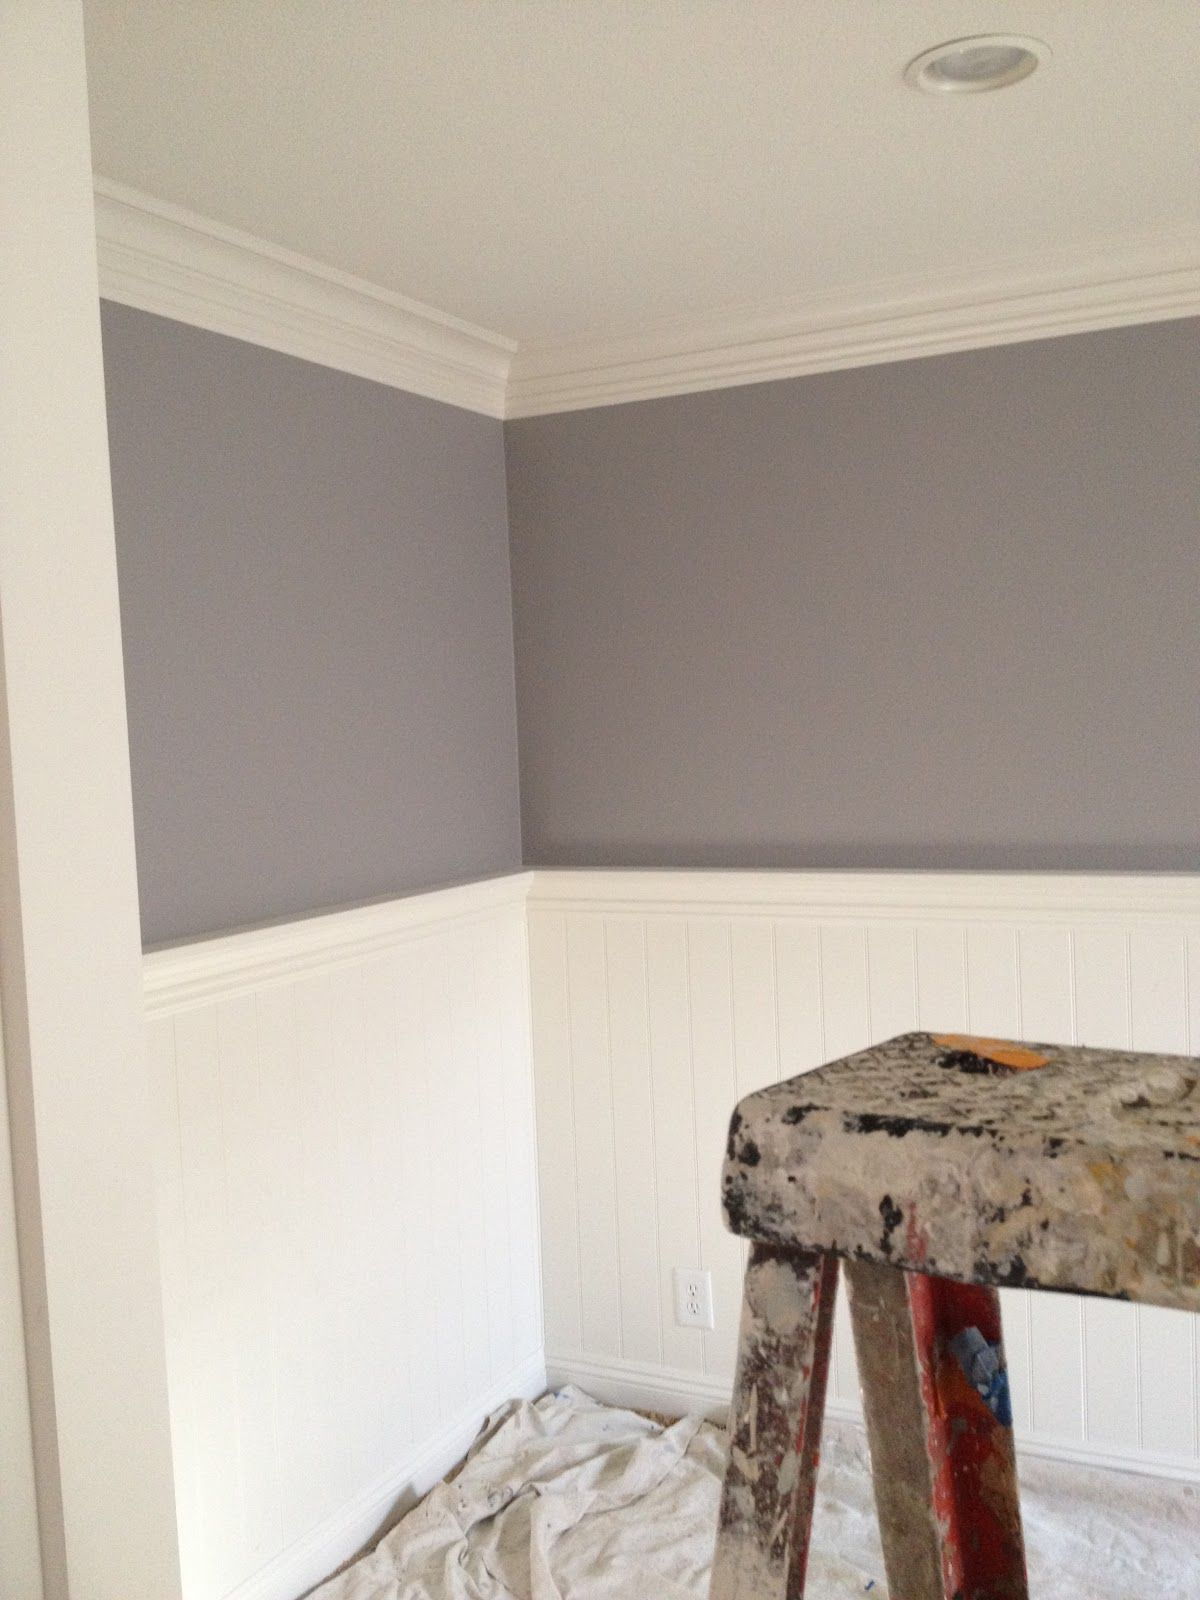 Benjamin moore paint san diego - Nantucket Fog By Benjamin Moore My Kitchen Is This And It Is A Nice Soft Grey Blue And I Get Lots Of Comments You Can Kind Of See It In This Pic